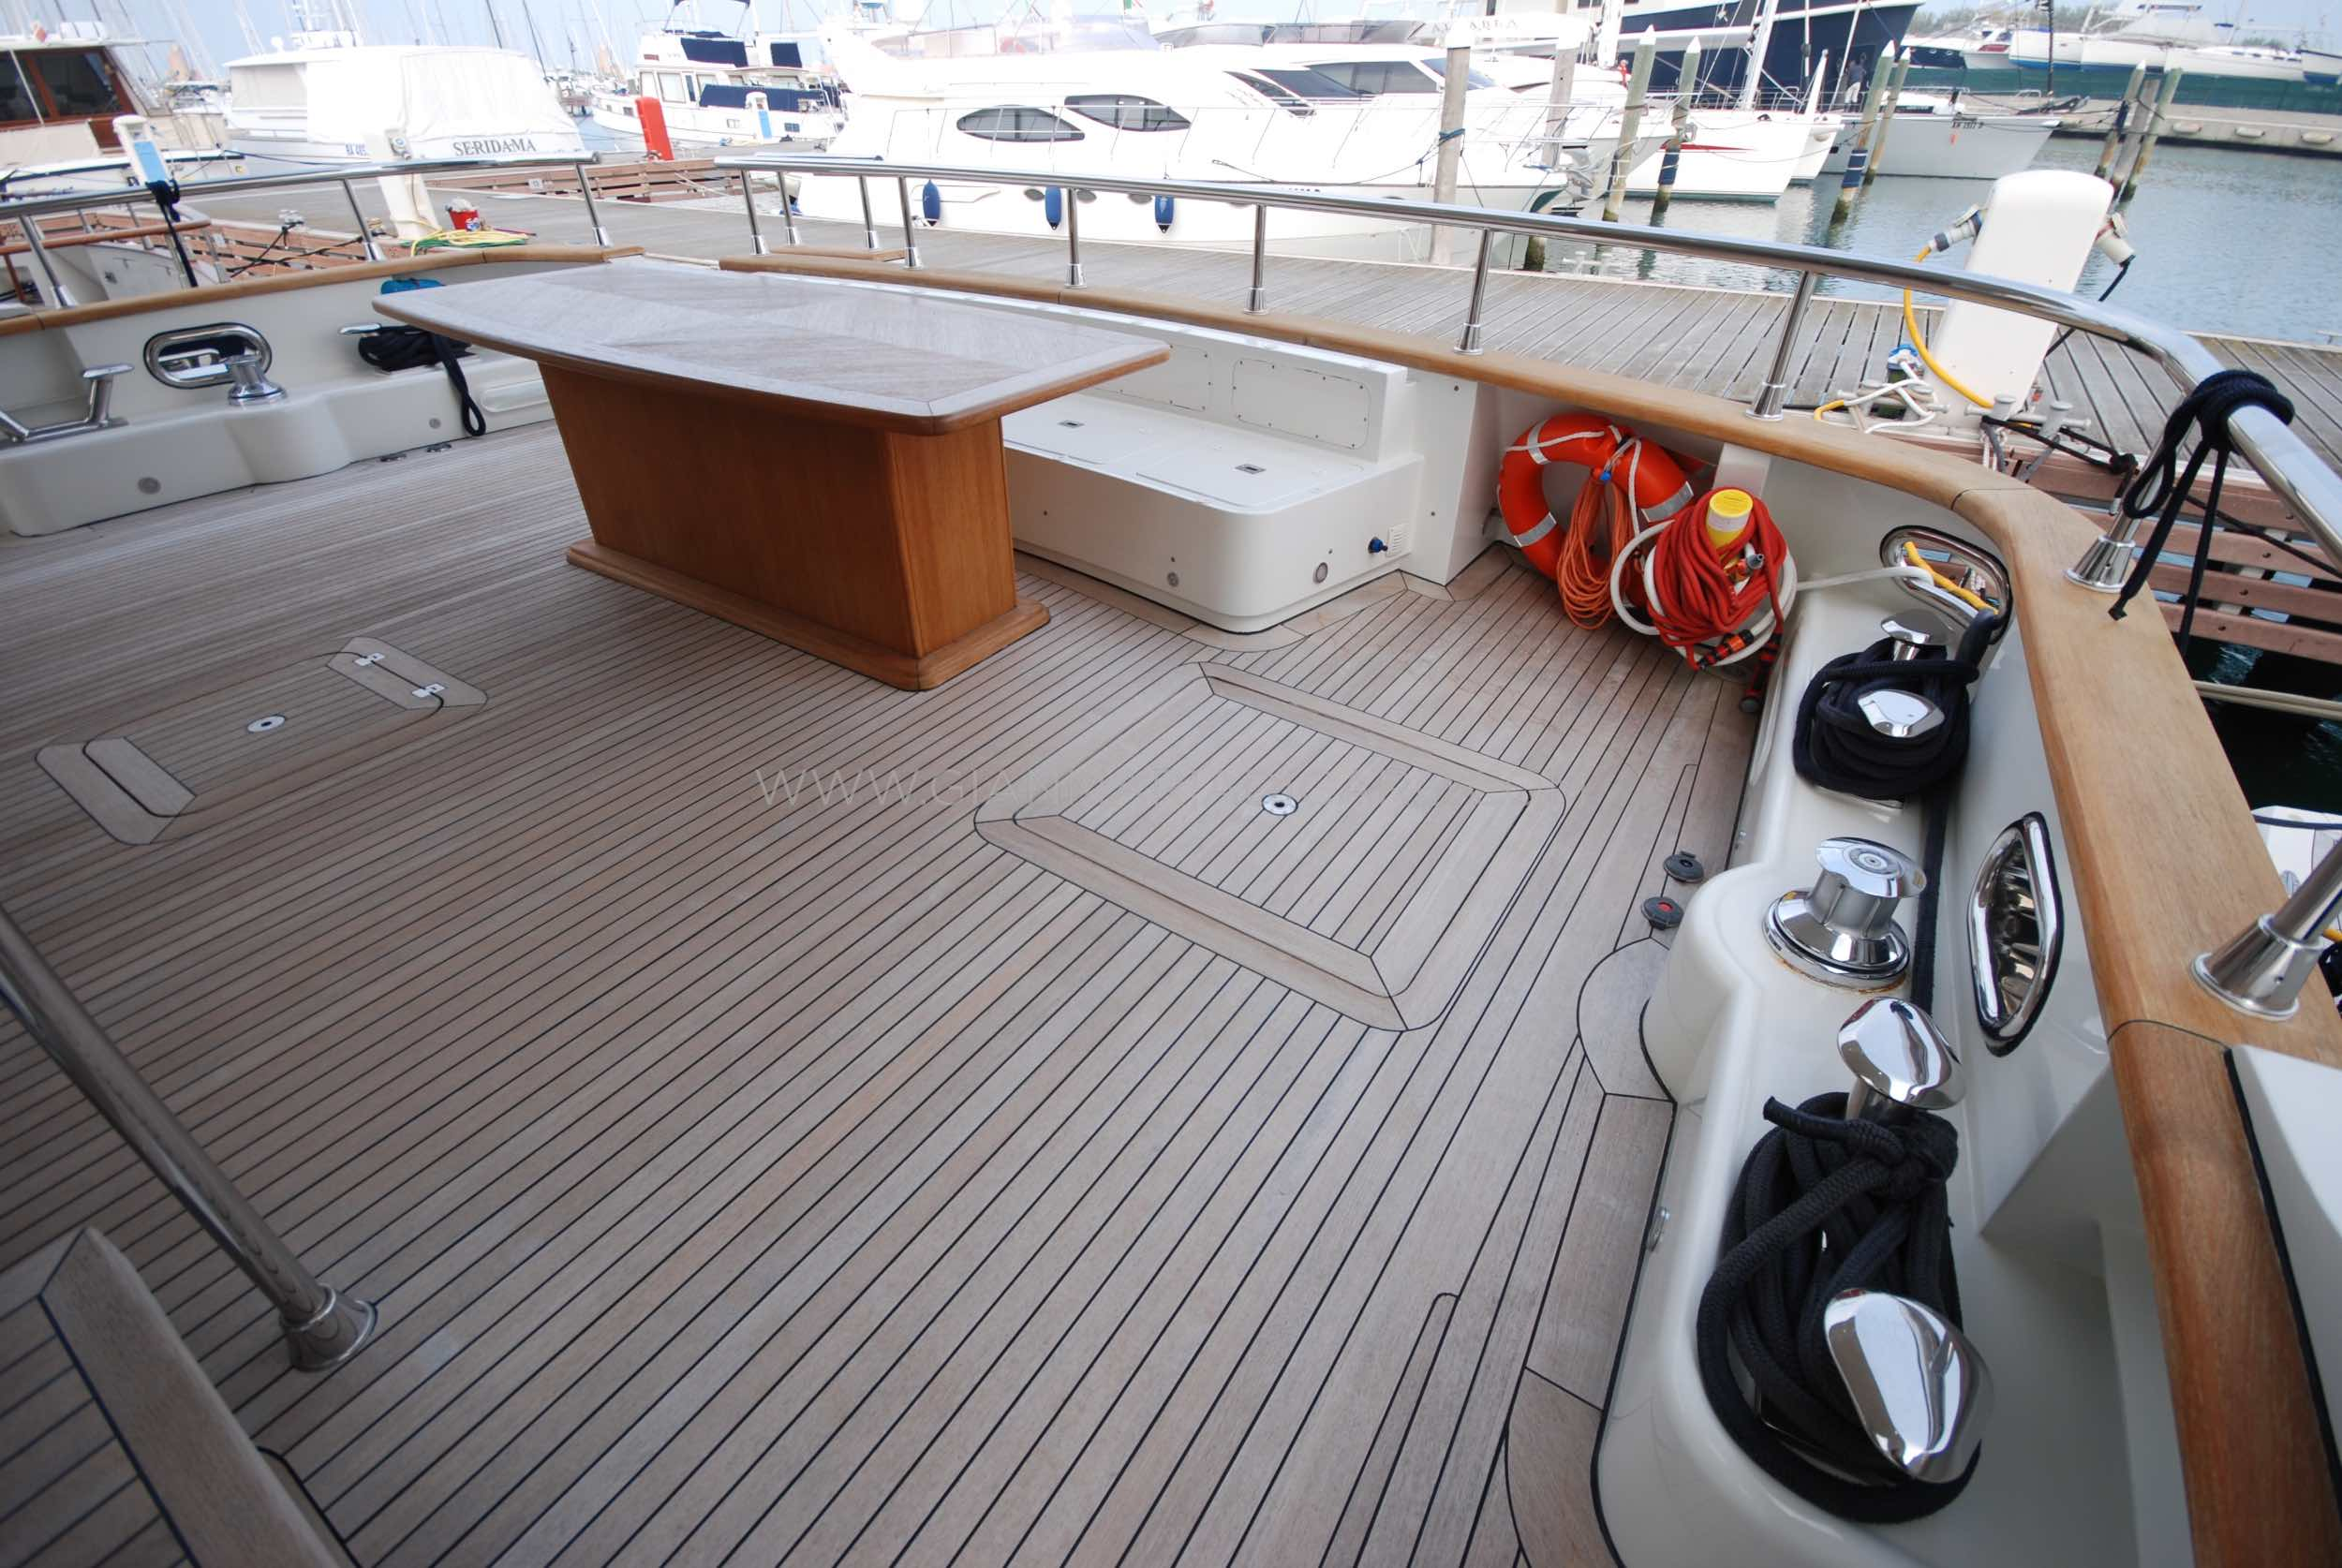 emys-yacht-22-unica-for-sale-43.jpg